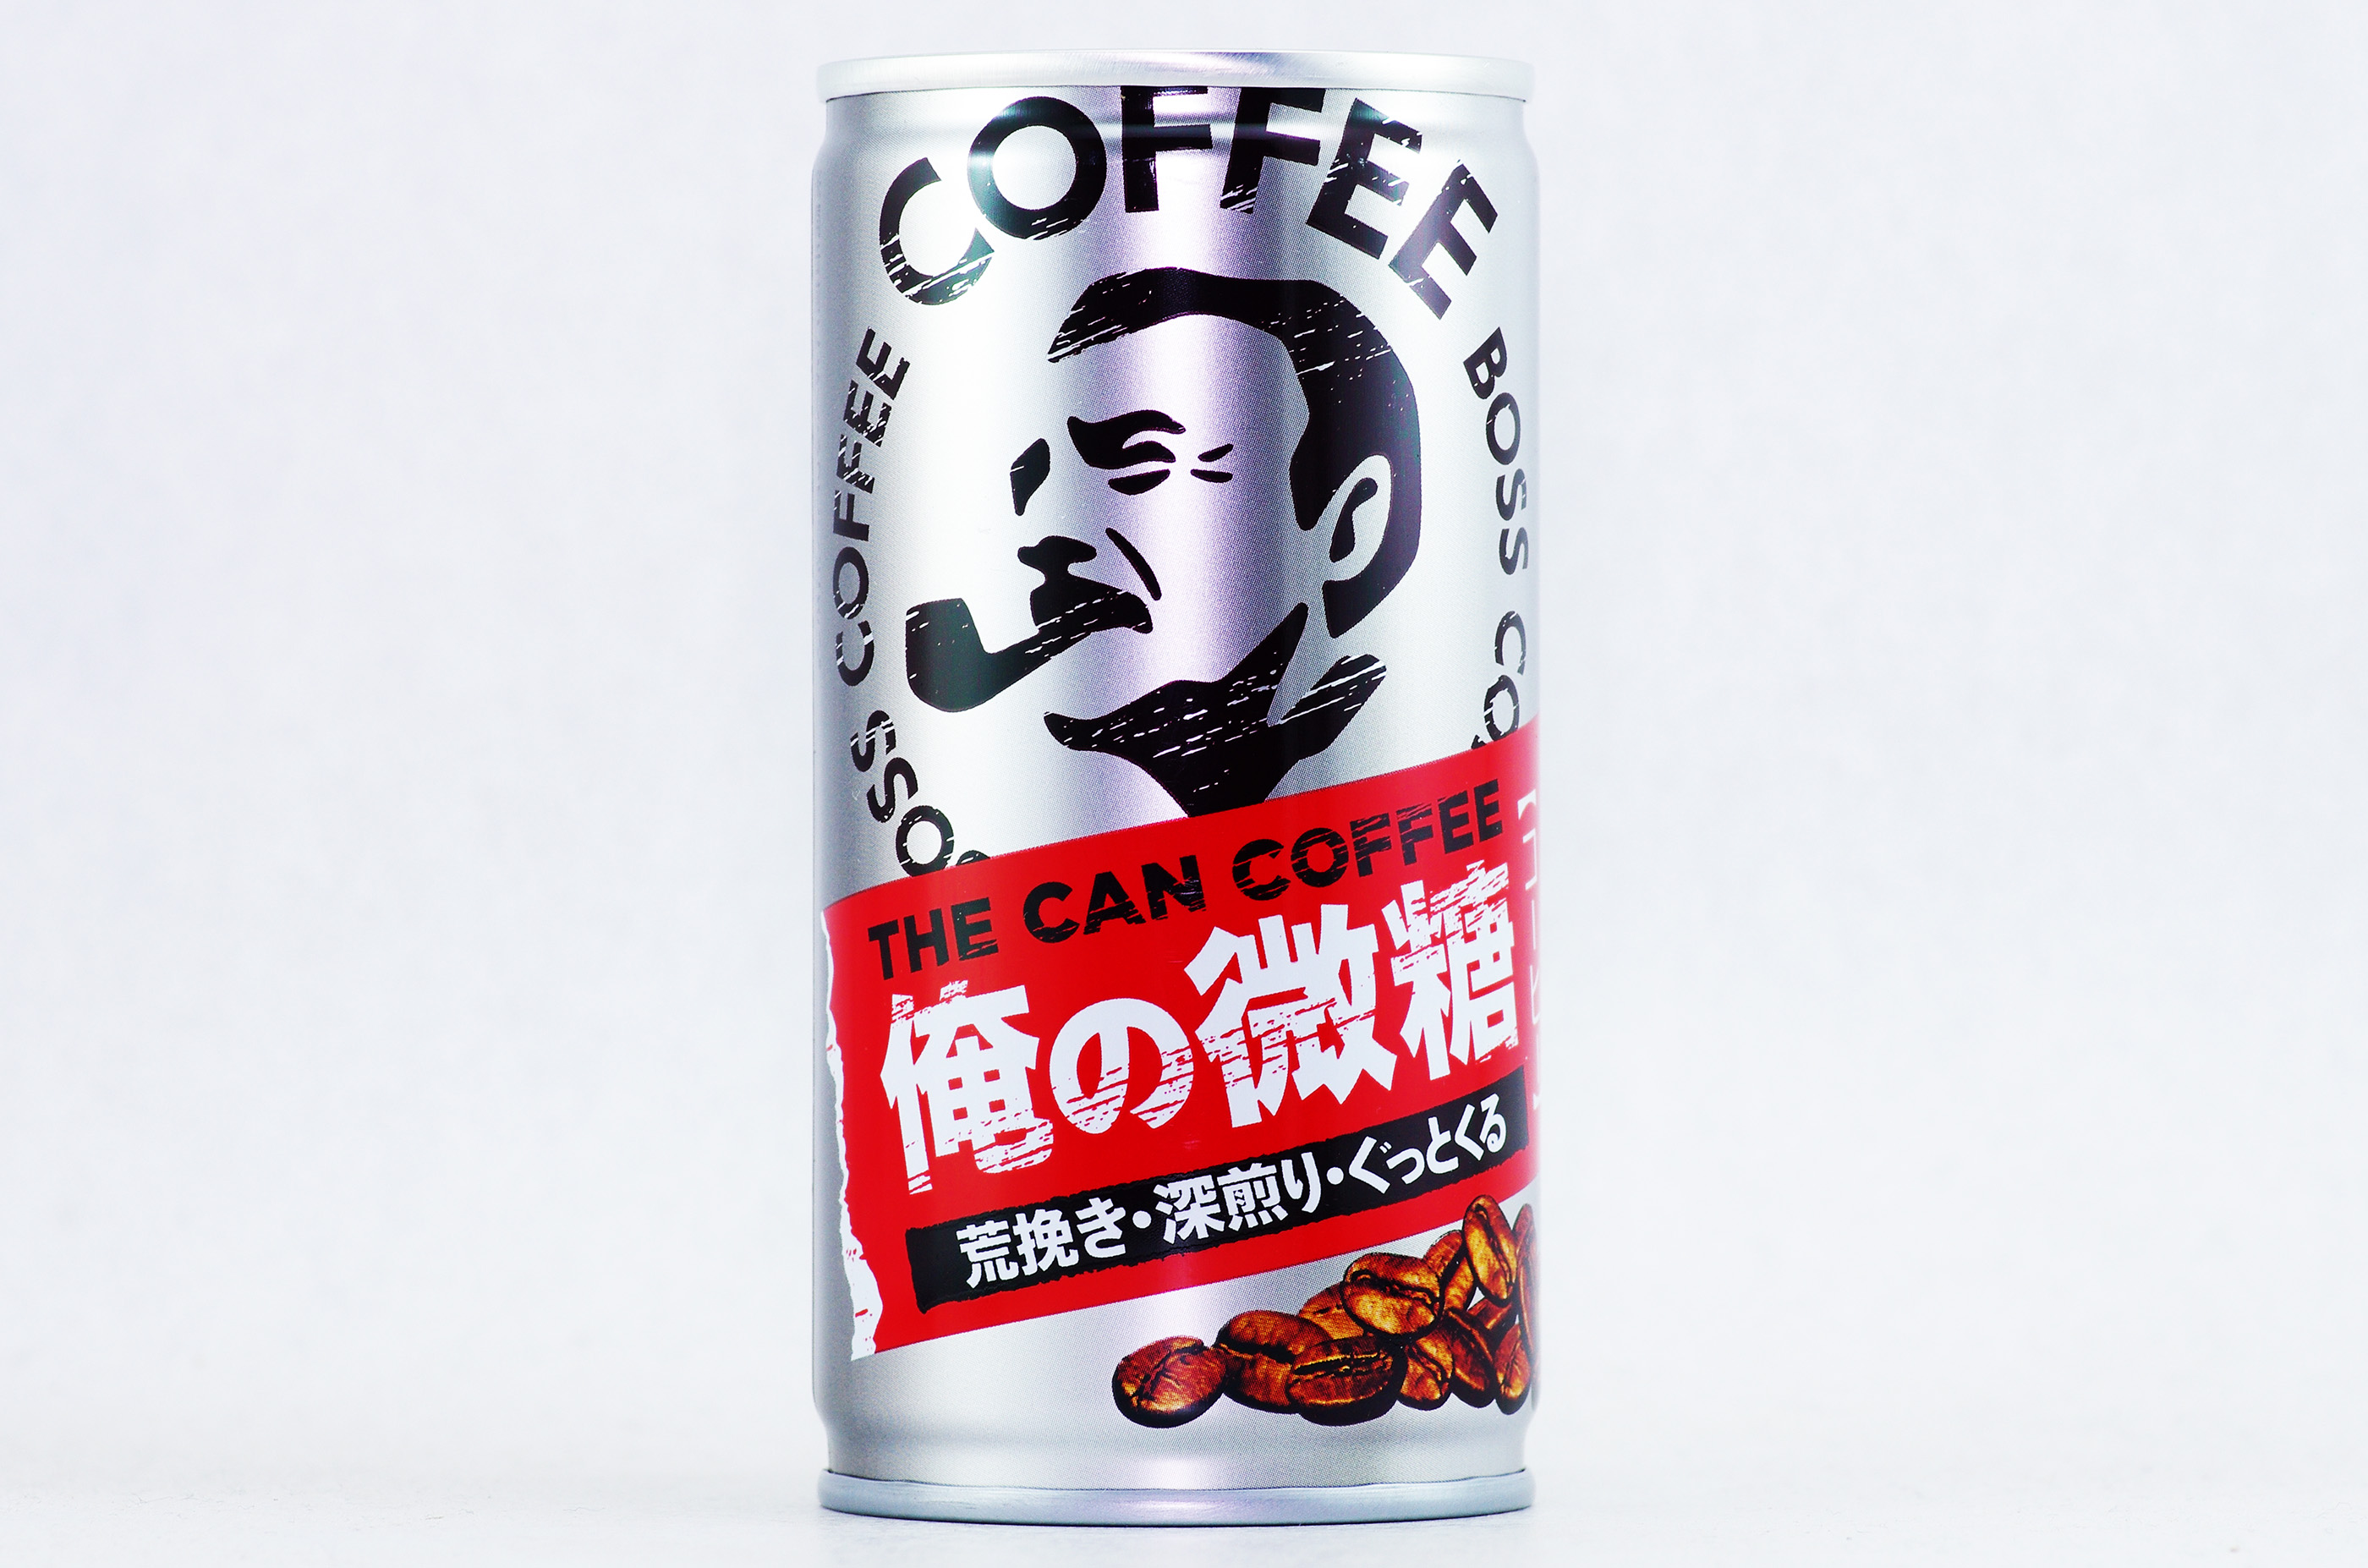 BOSS THE CAN COFFEE 俺の微糖 2019年1月